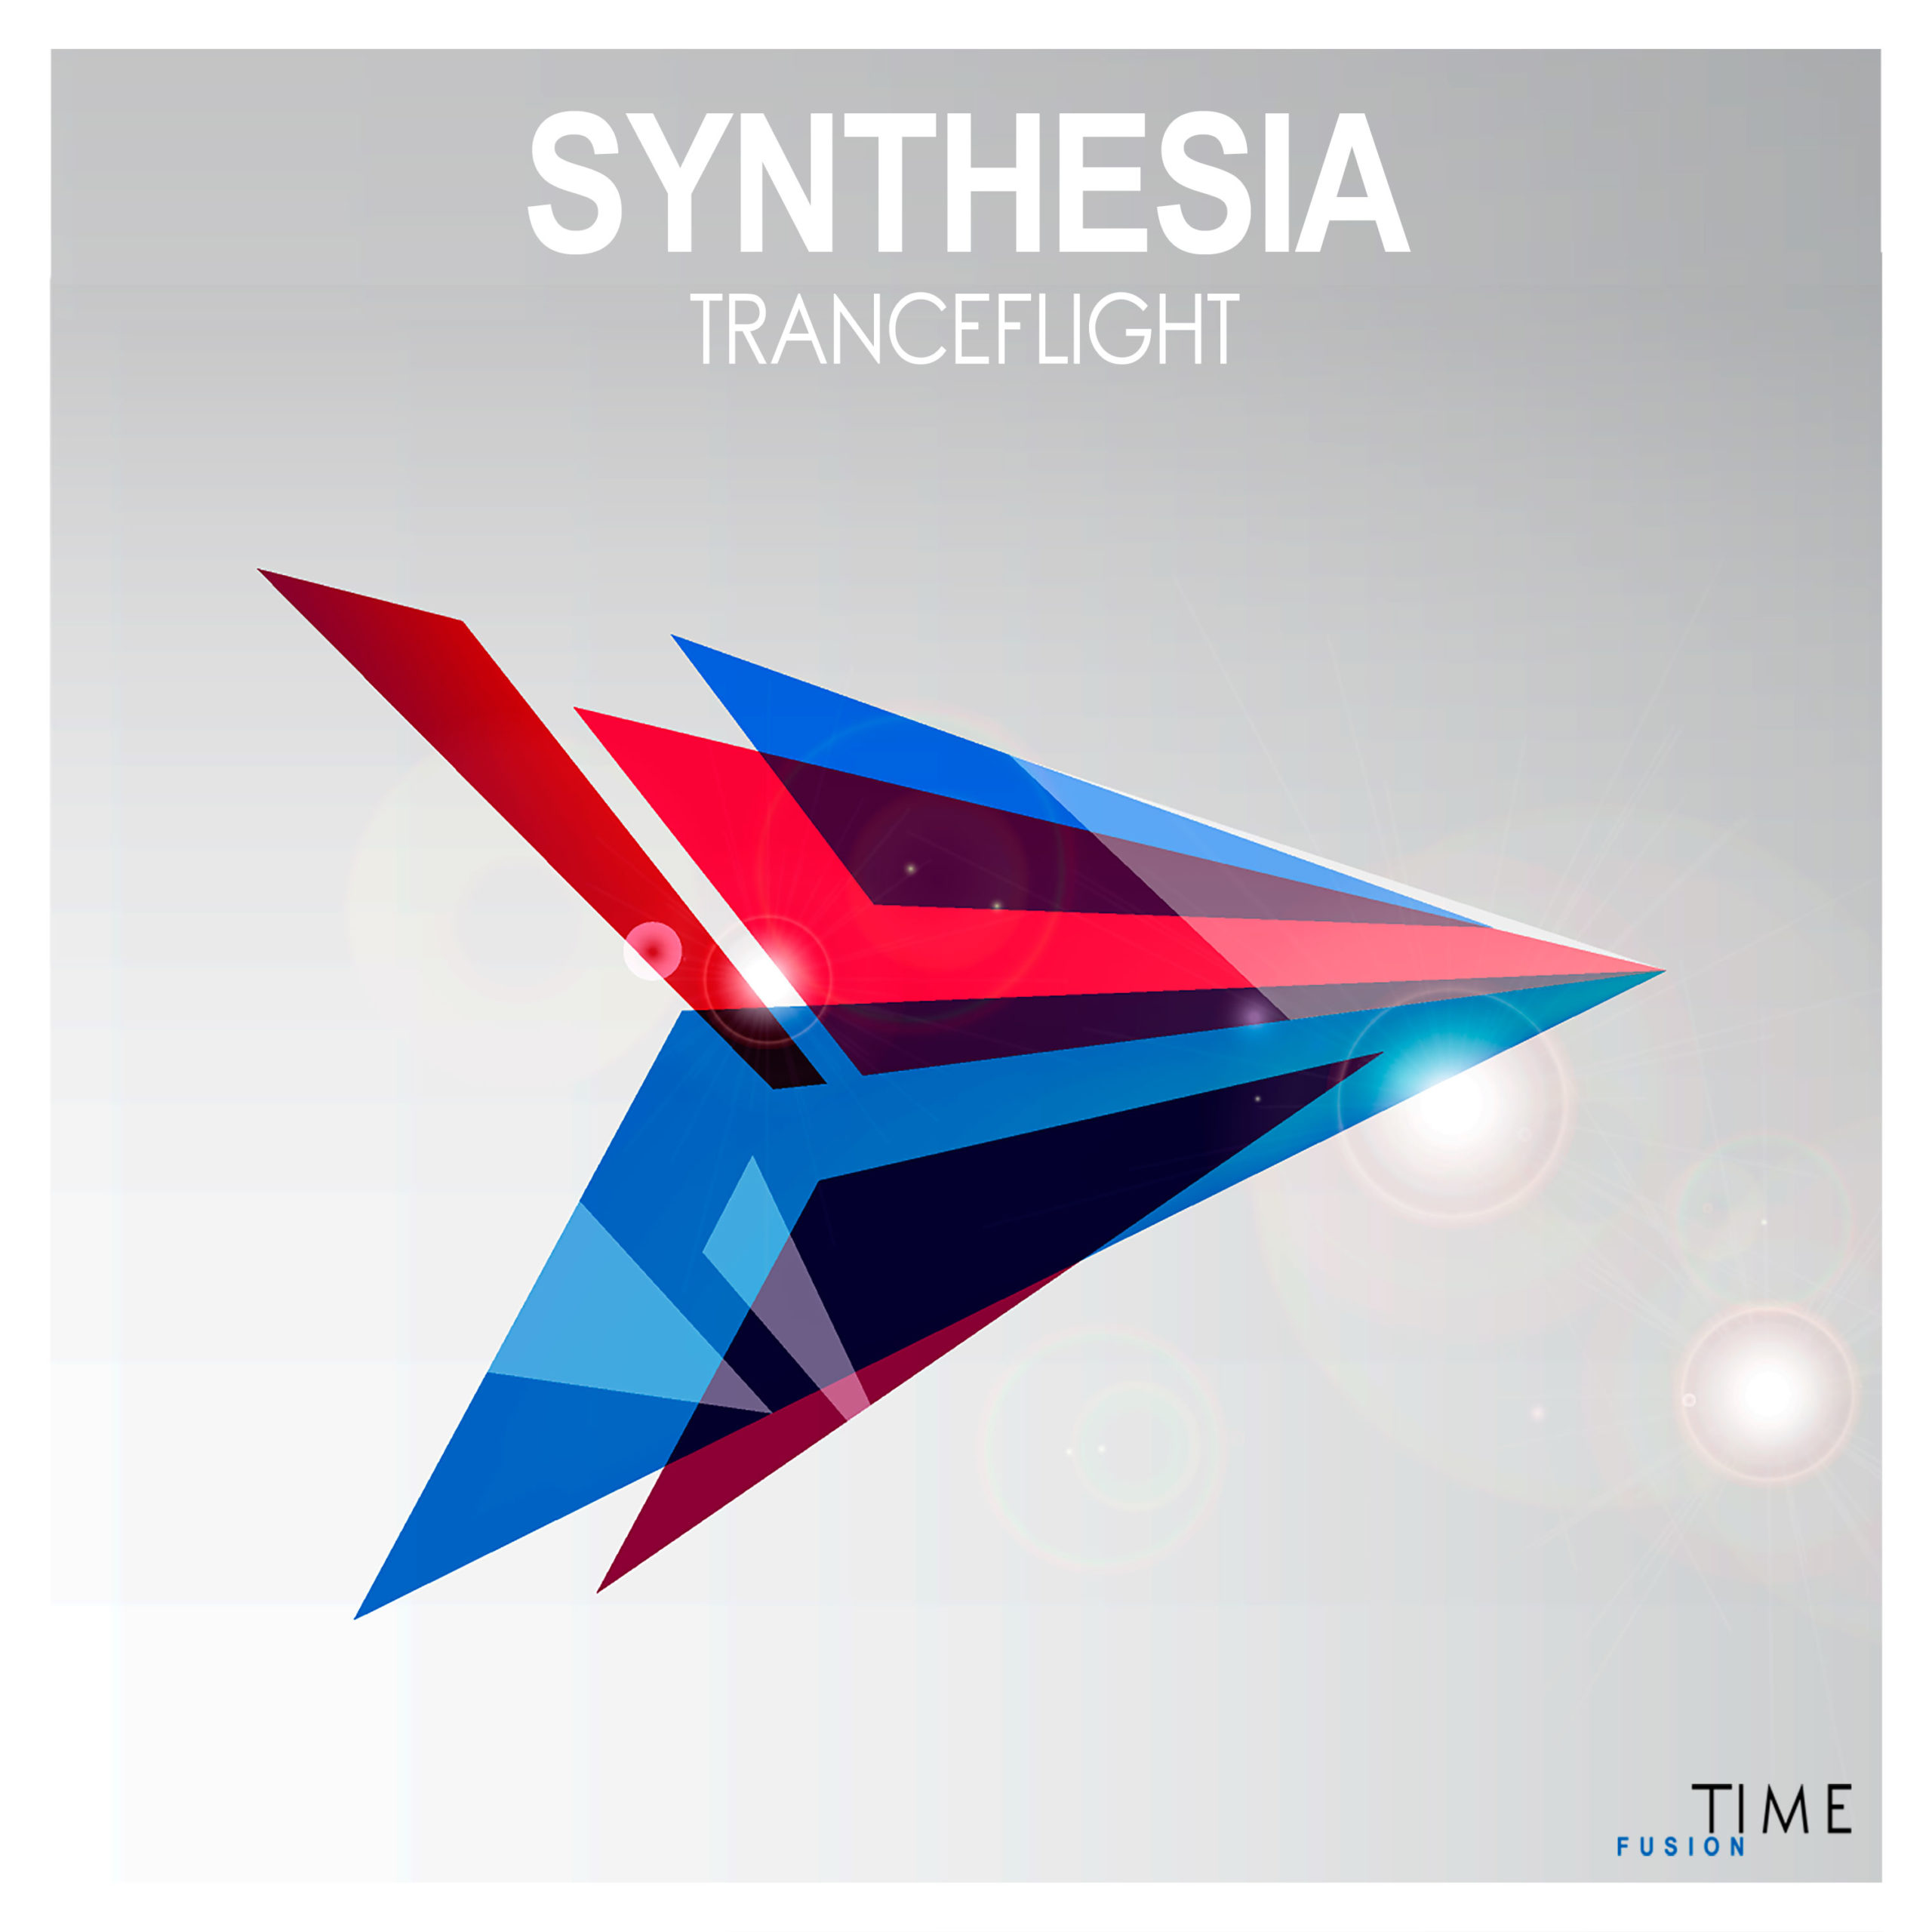 https://www.ultimate-house-records.com/wp-content/uploads/2020/04/tf133-Synthesia-3000px_web-scaled.jpg